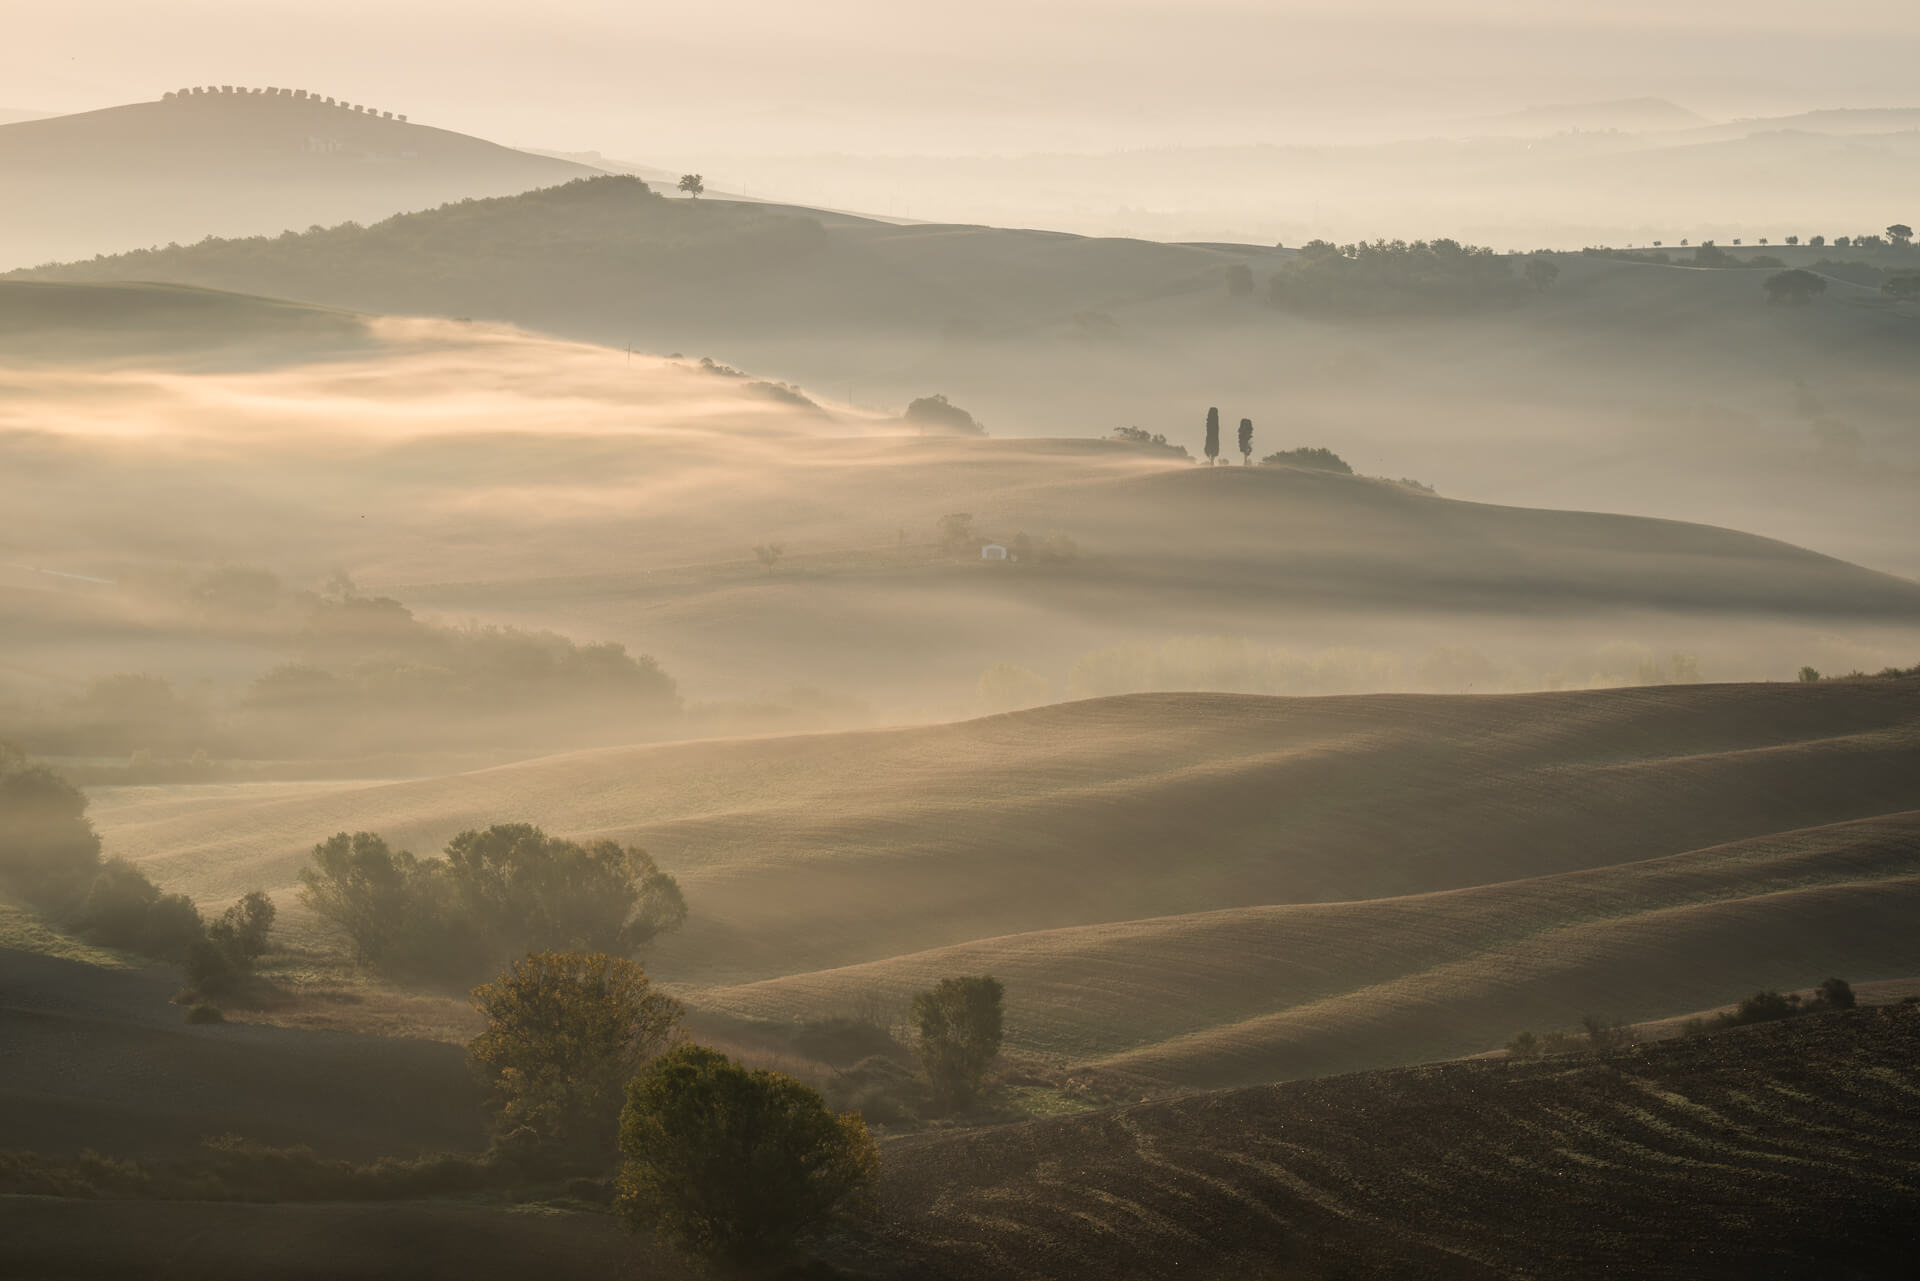 Morning Fog Val d'Orcia in Tuscany, Italy